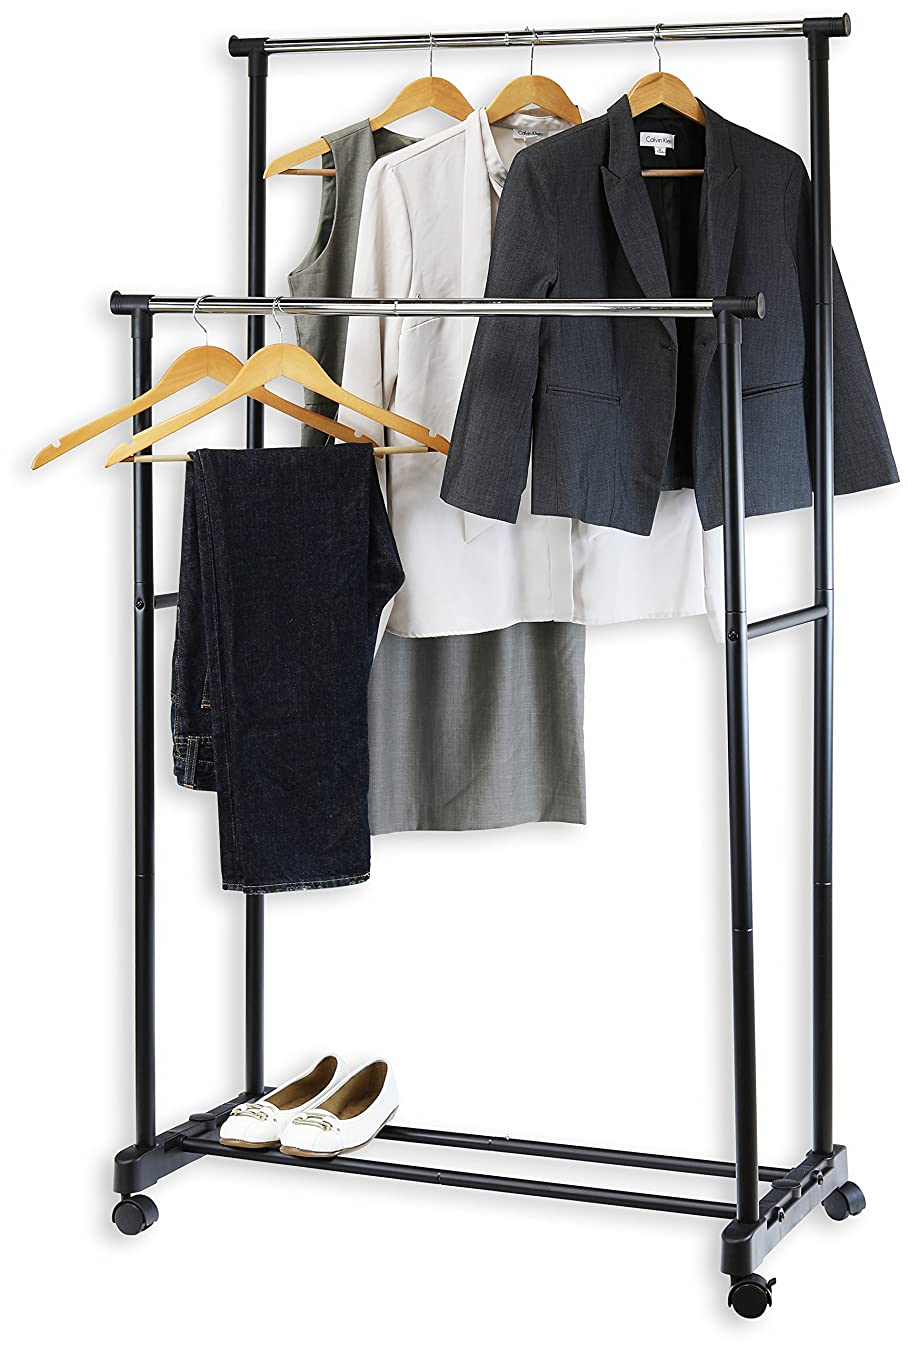 Simple Houseware Double Rod Portable Clothing Hanging Garment Rack